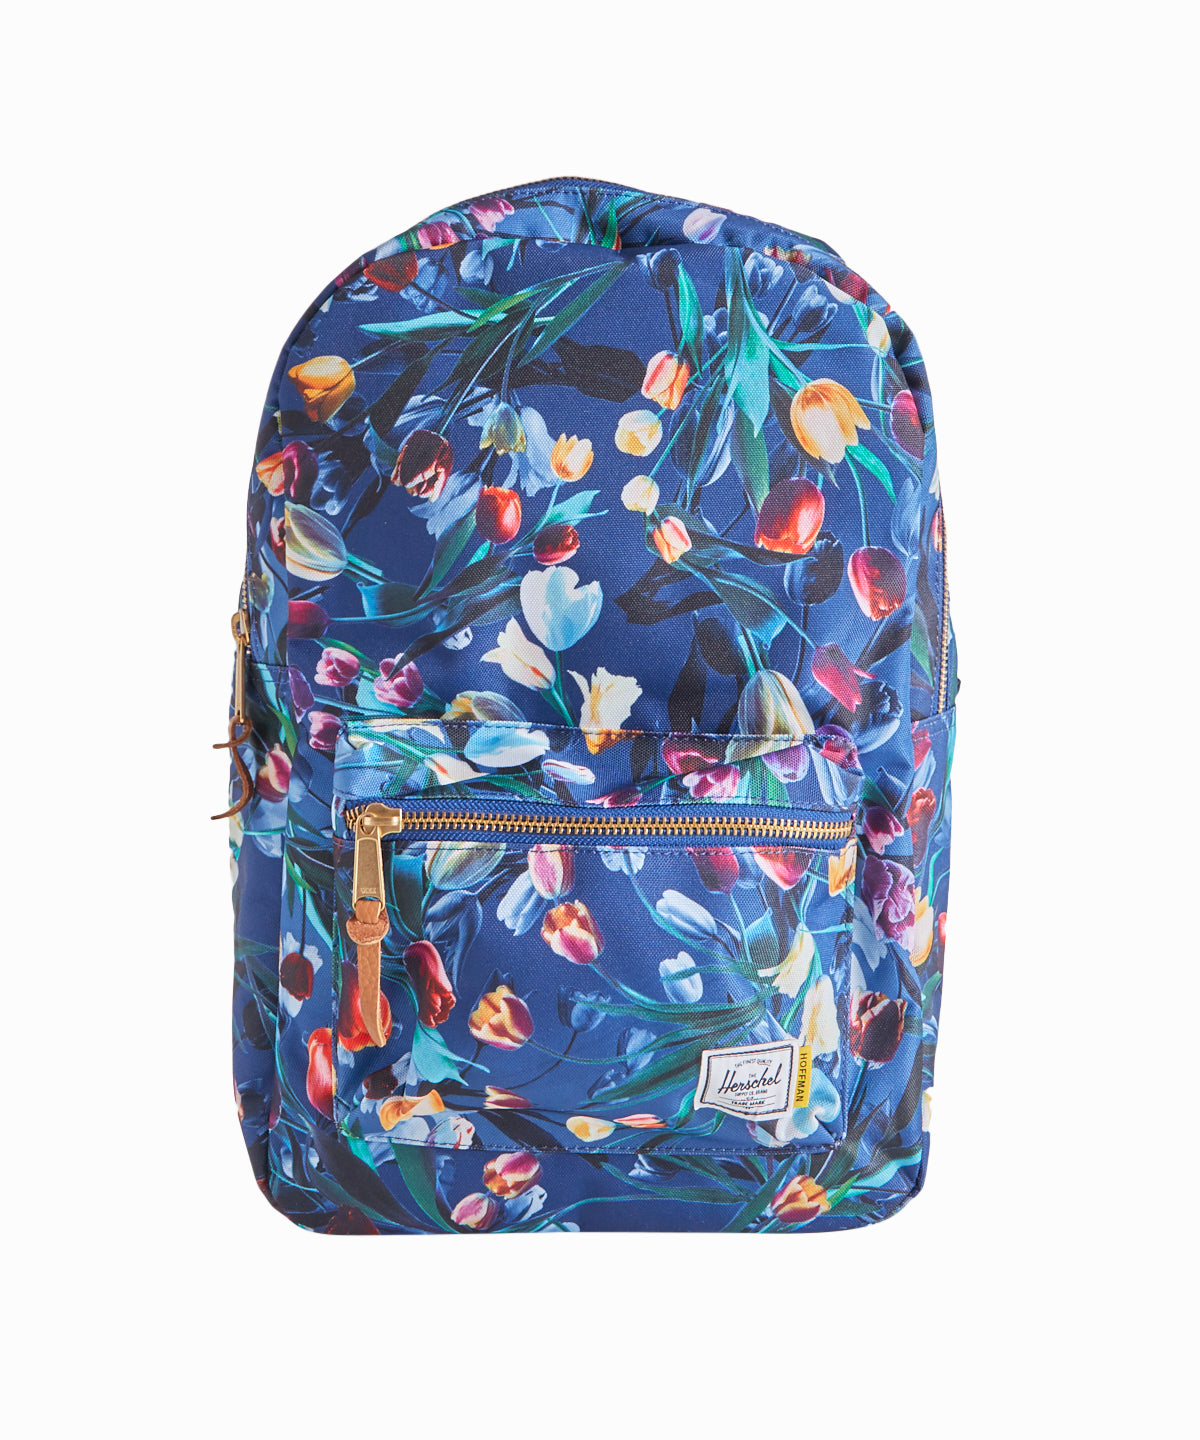 Settlement Floral Backpack